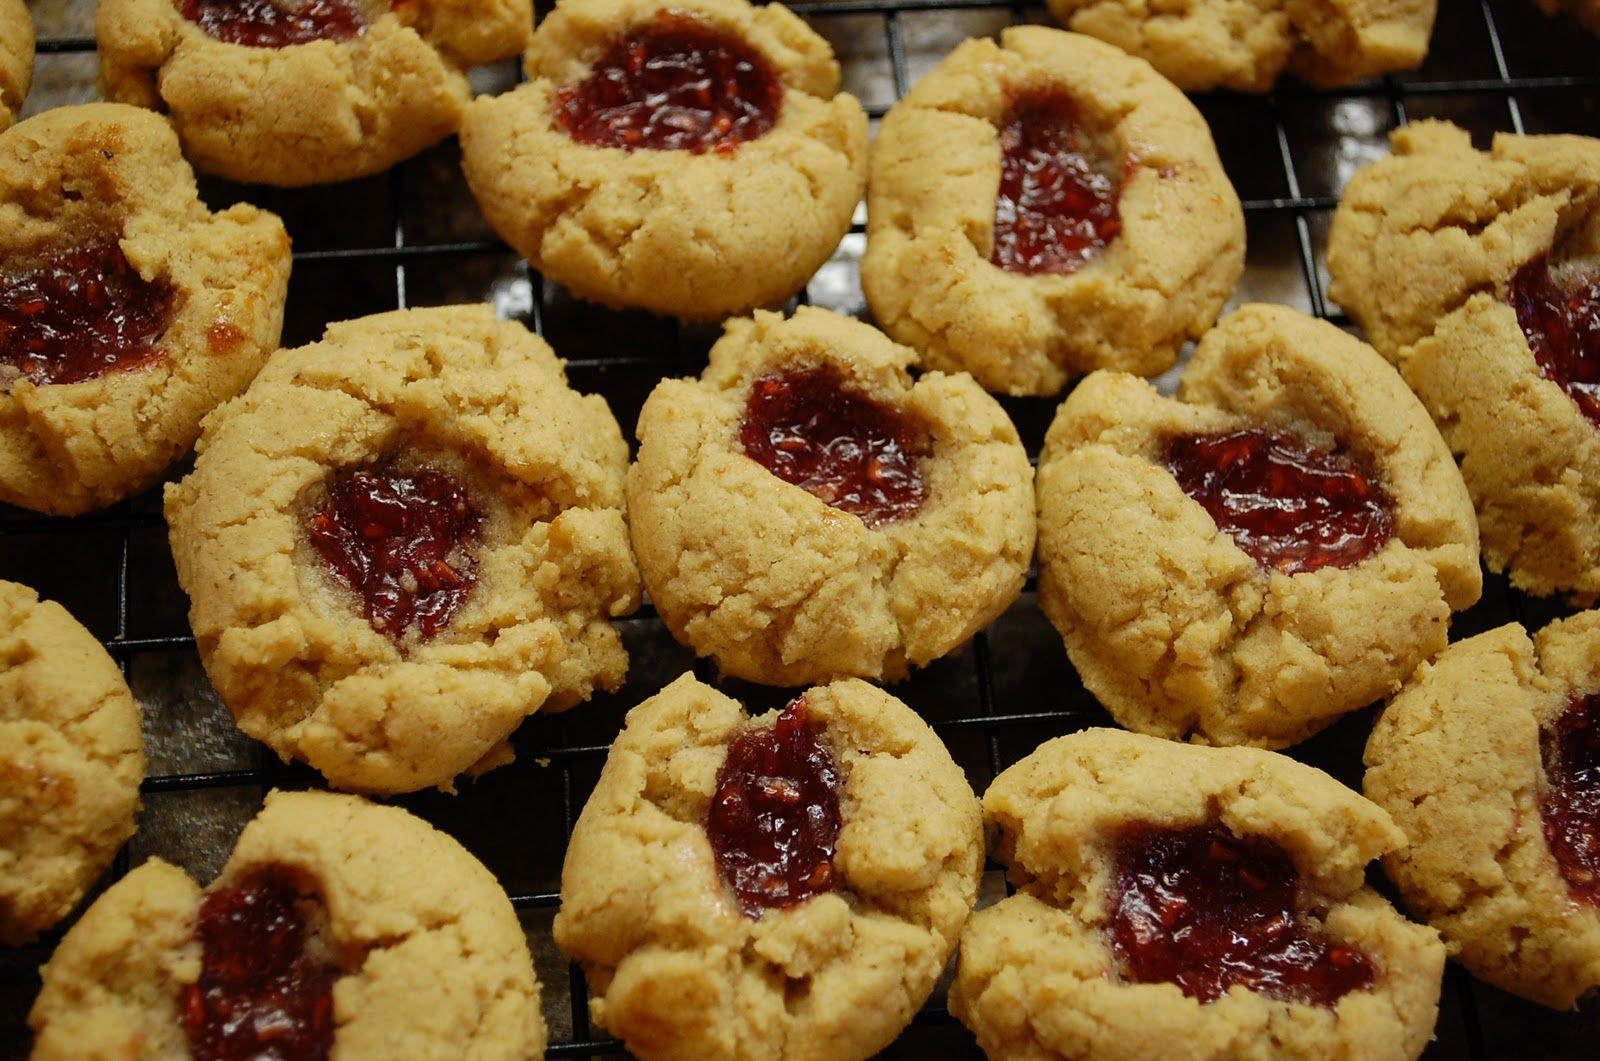 Every Pot and Pan: Flourless Peanut Butter and Jelly Cookies